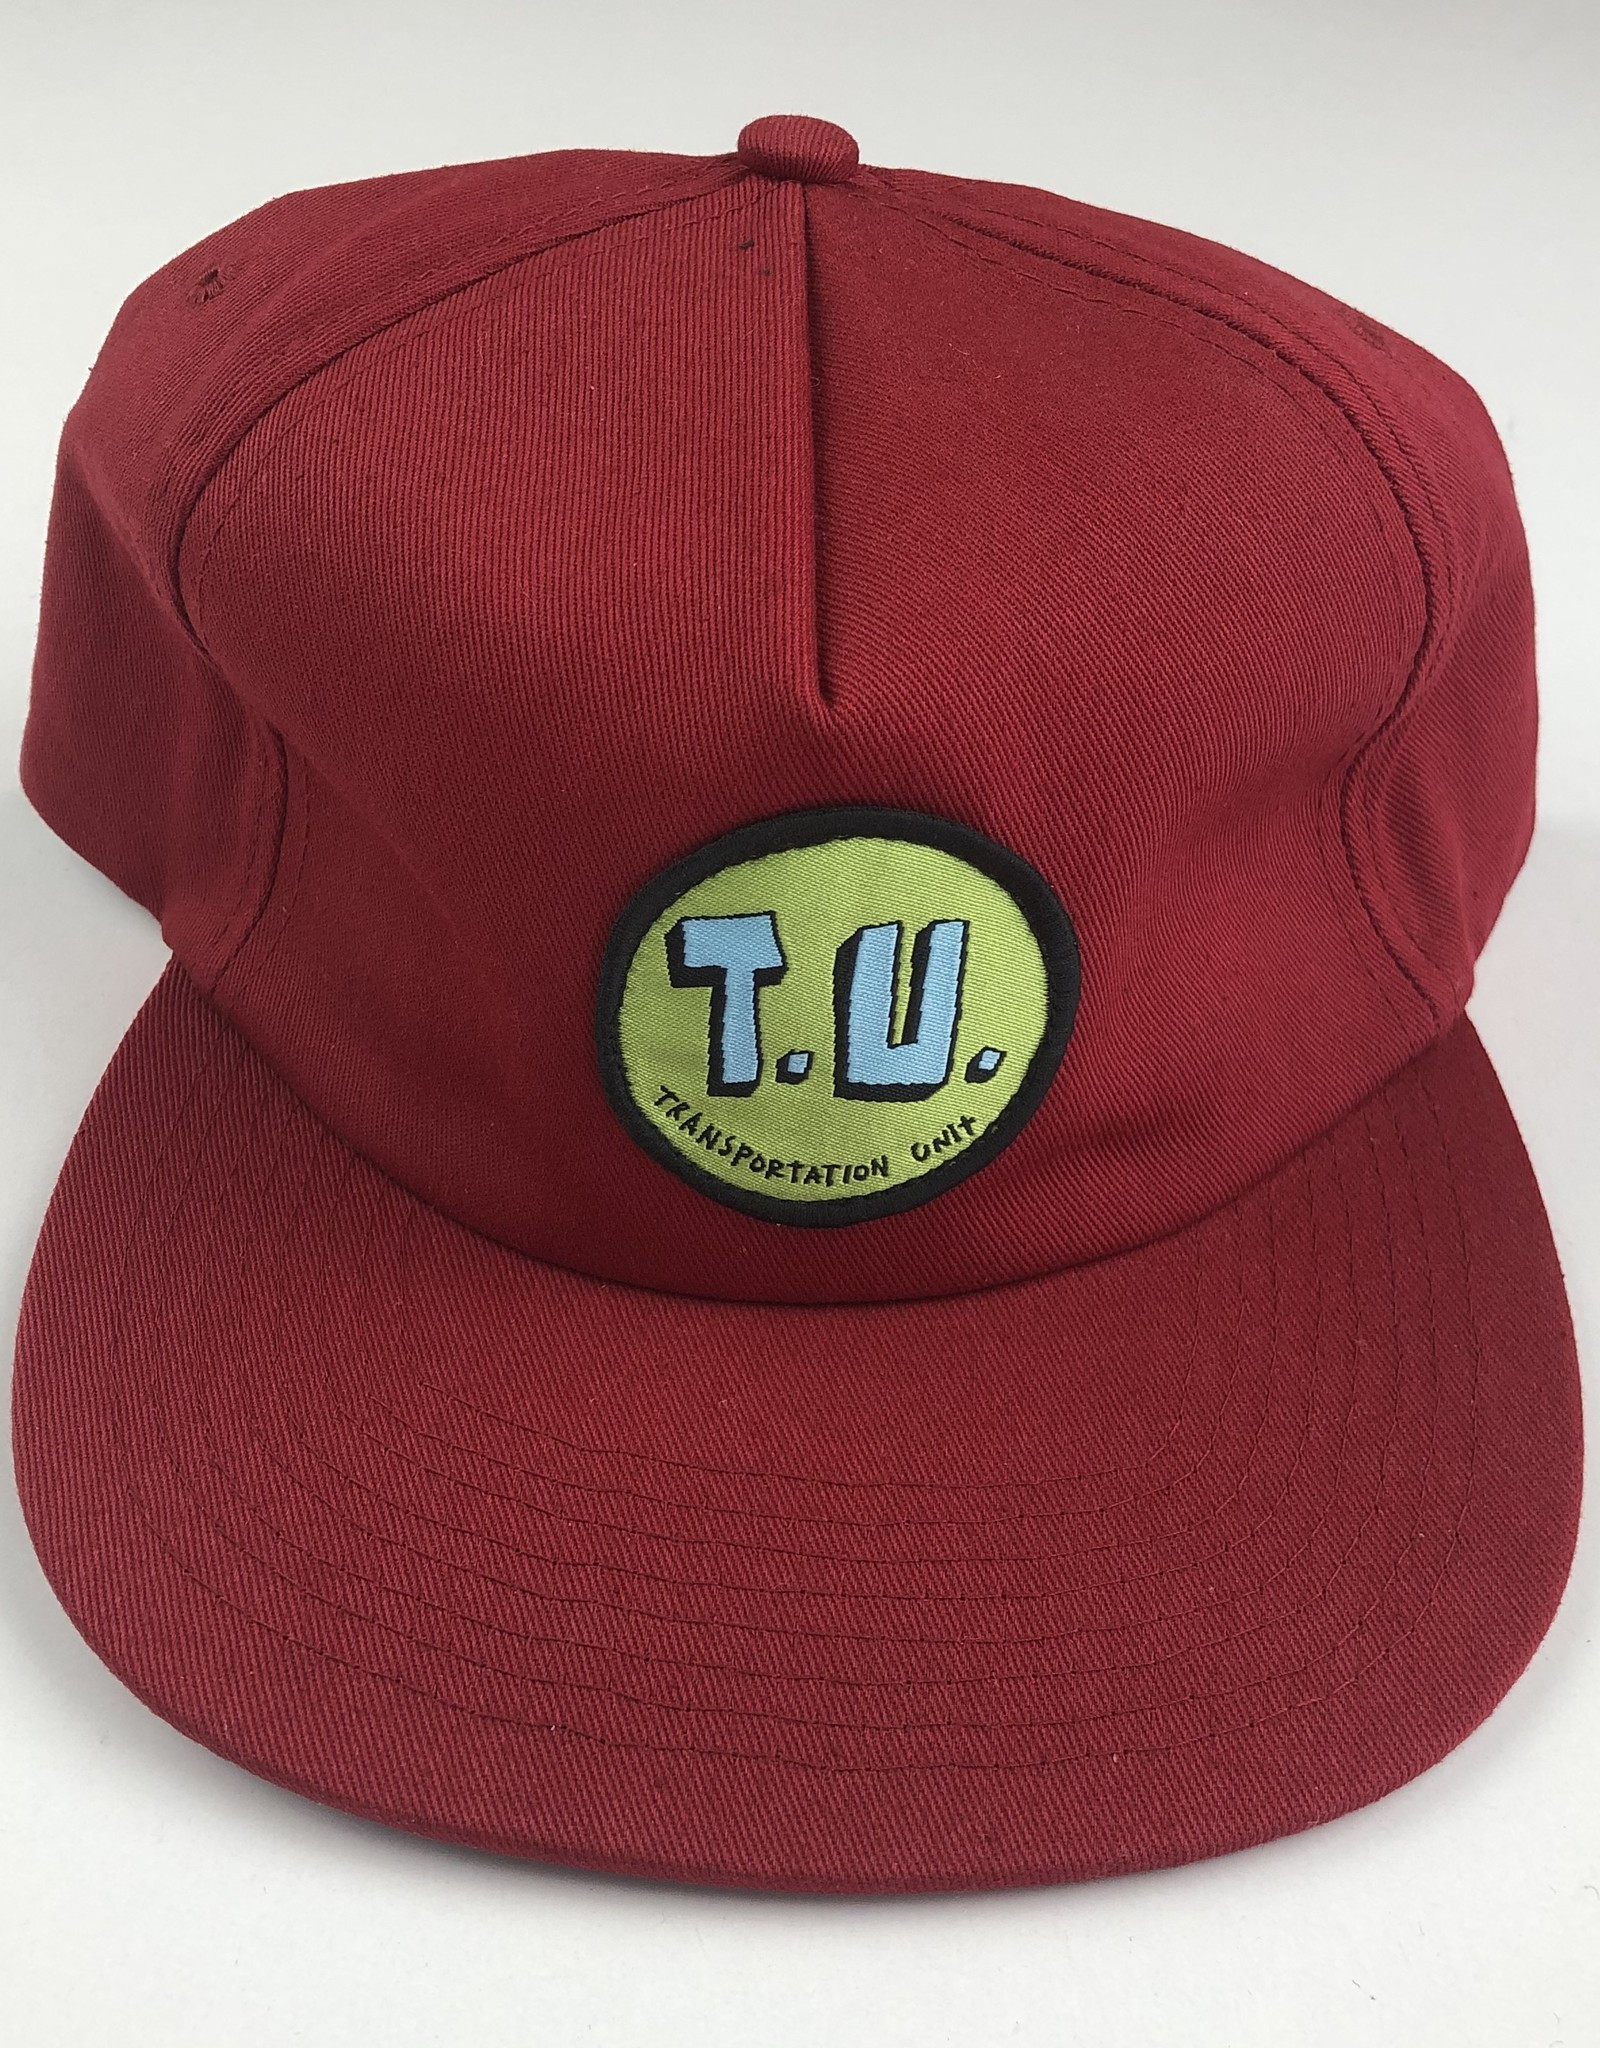 TRANSPORTATION UNIT TRANSPORTATION UNIT T.U. CLASSIC HAT - MAROON